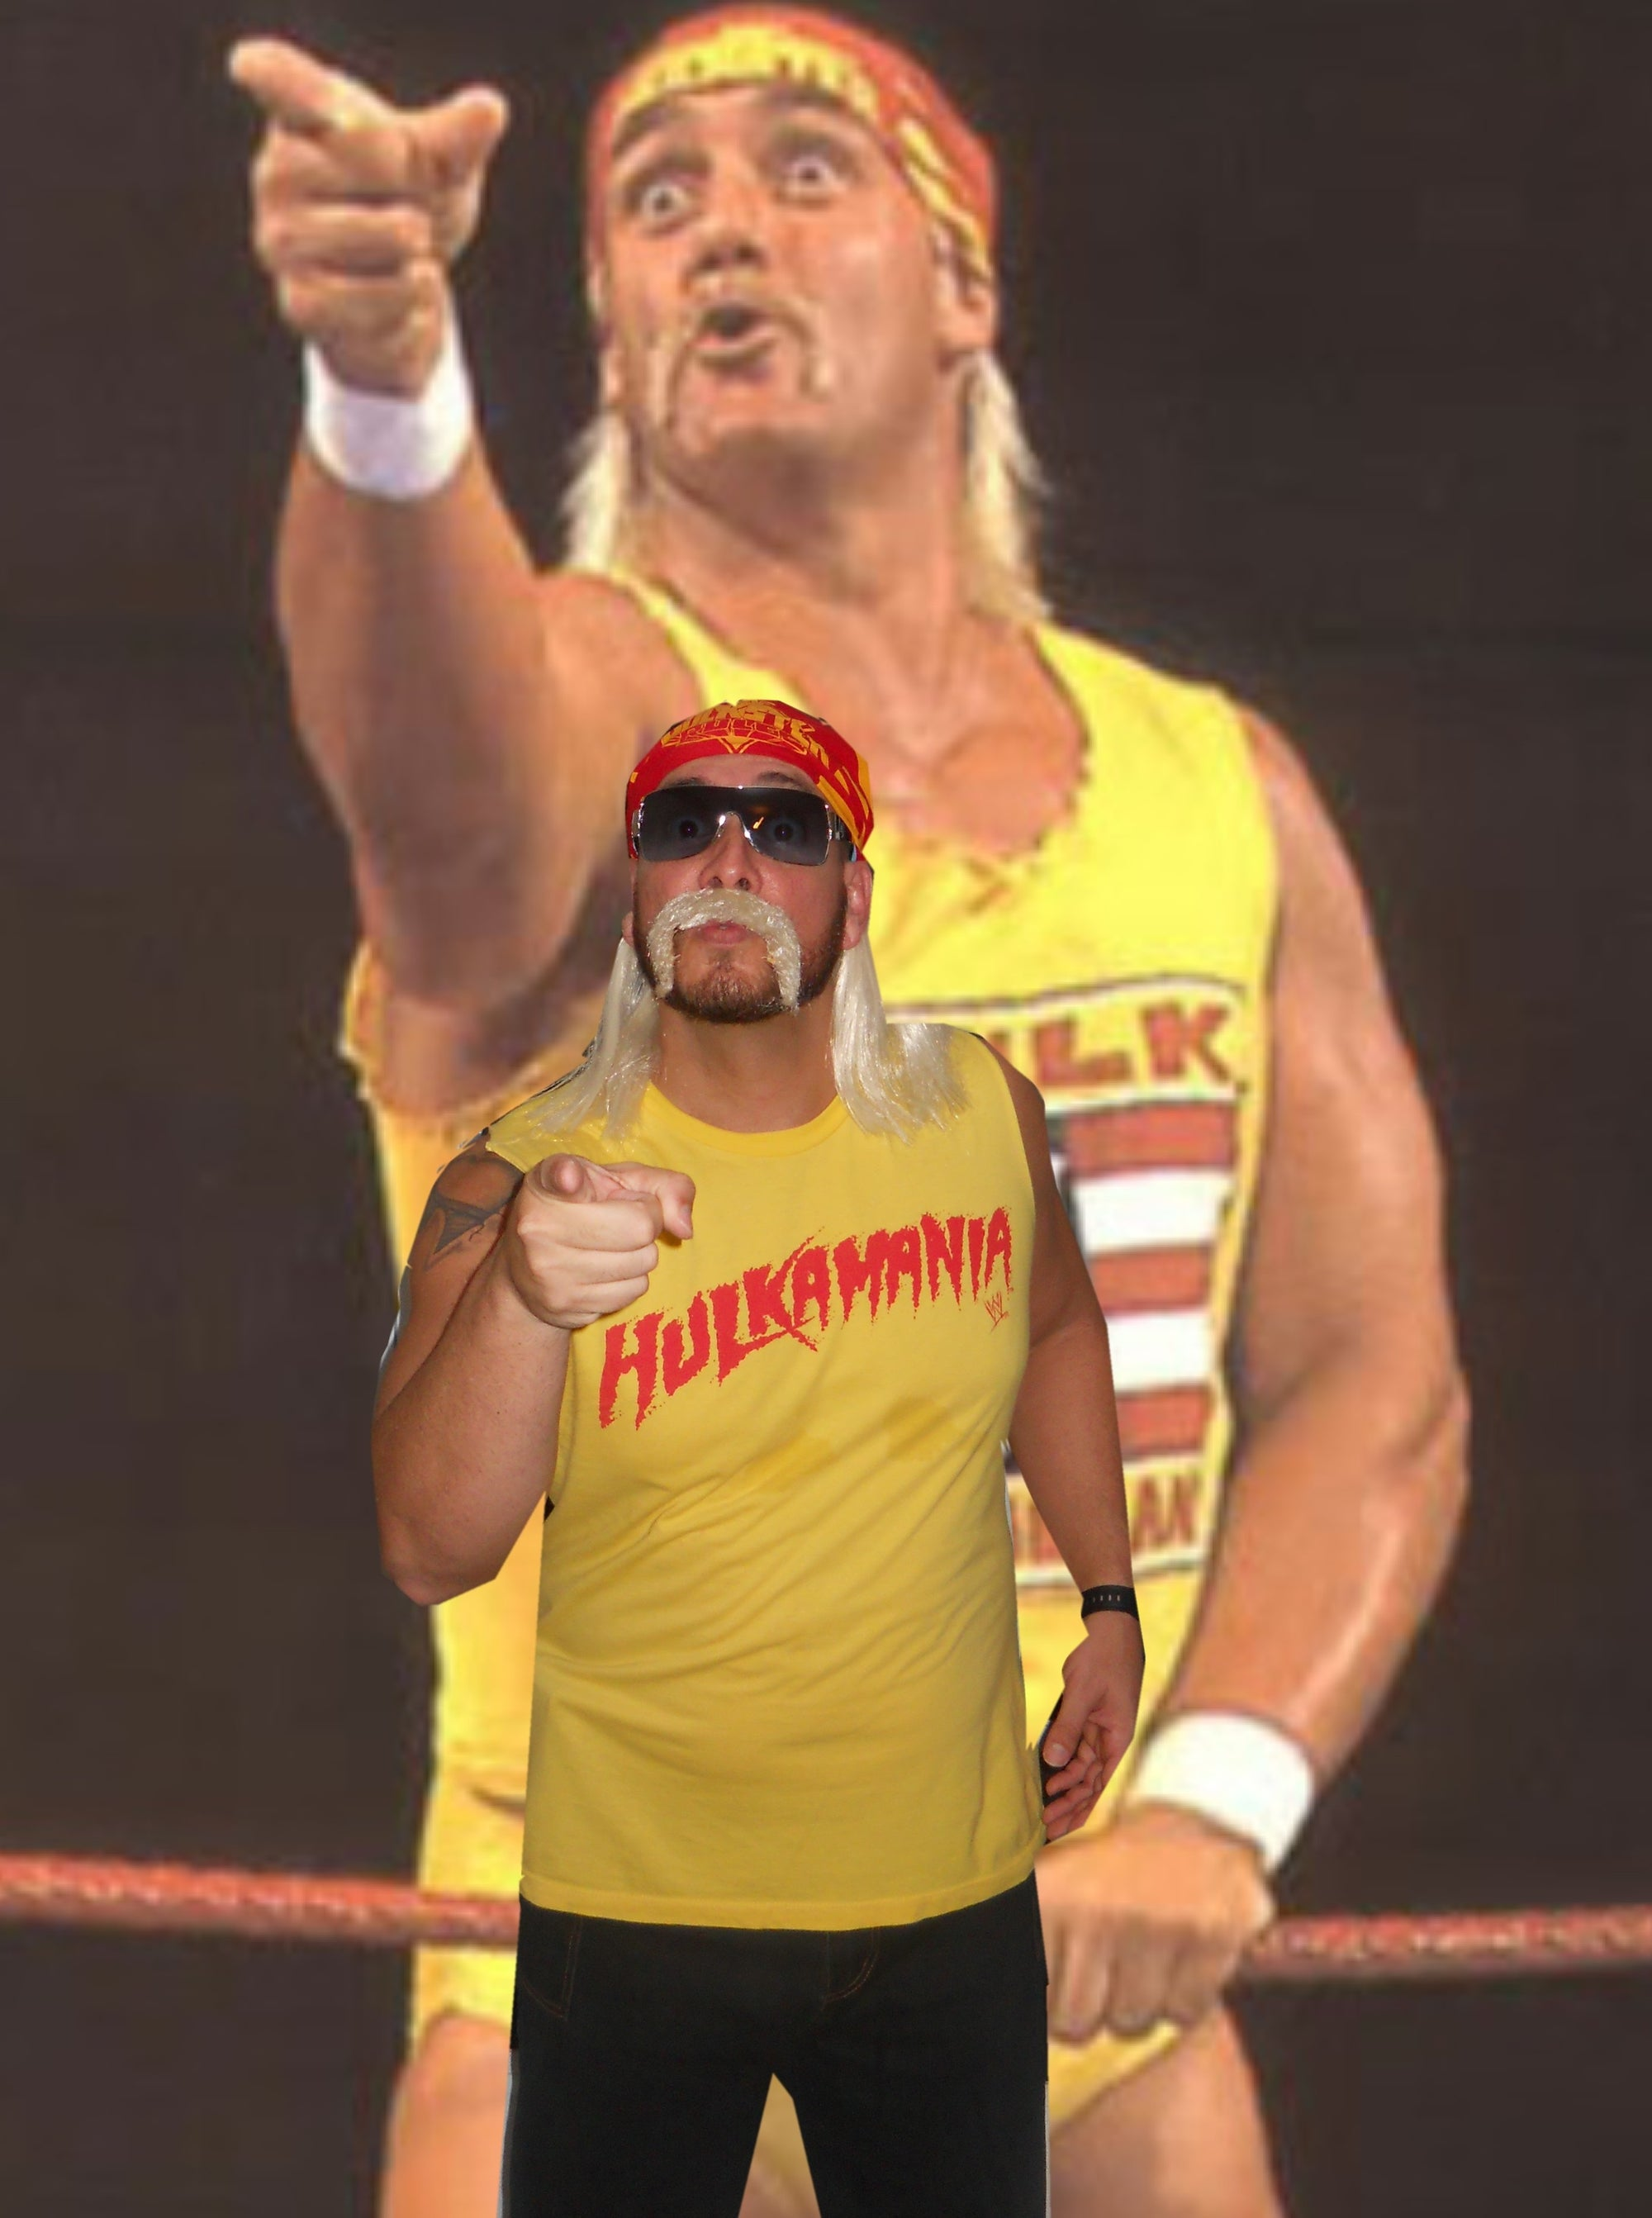 Halloween Costume 201 - Hulk Hogan